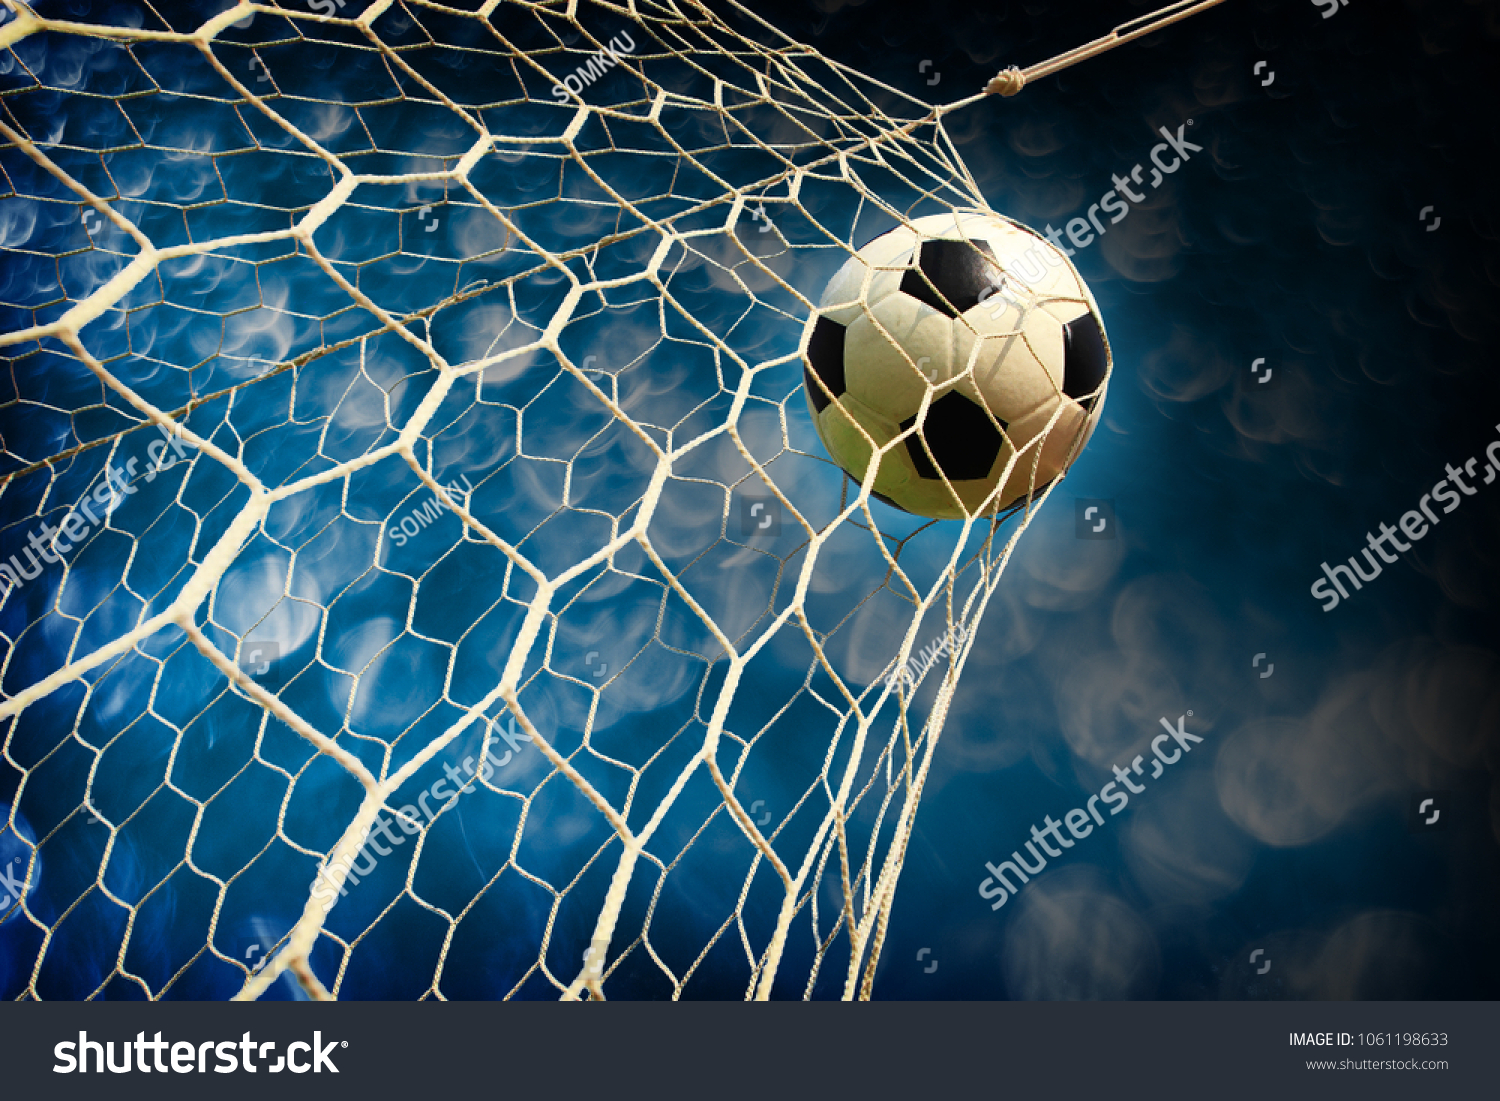 soccer field with a ball in goal #1061198633